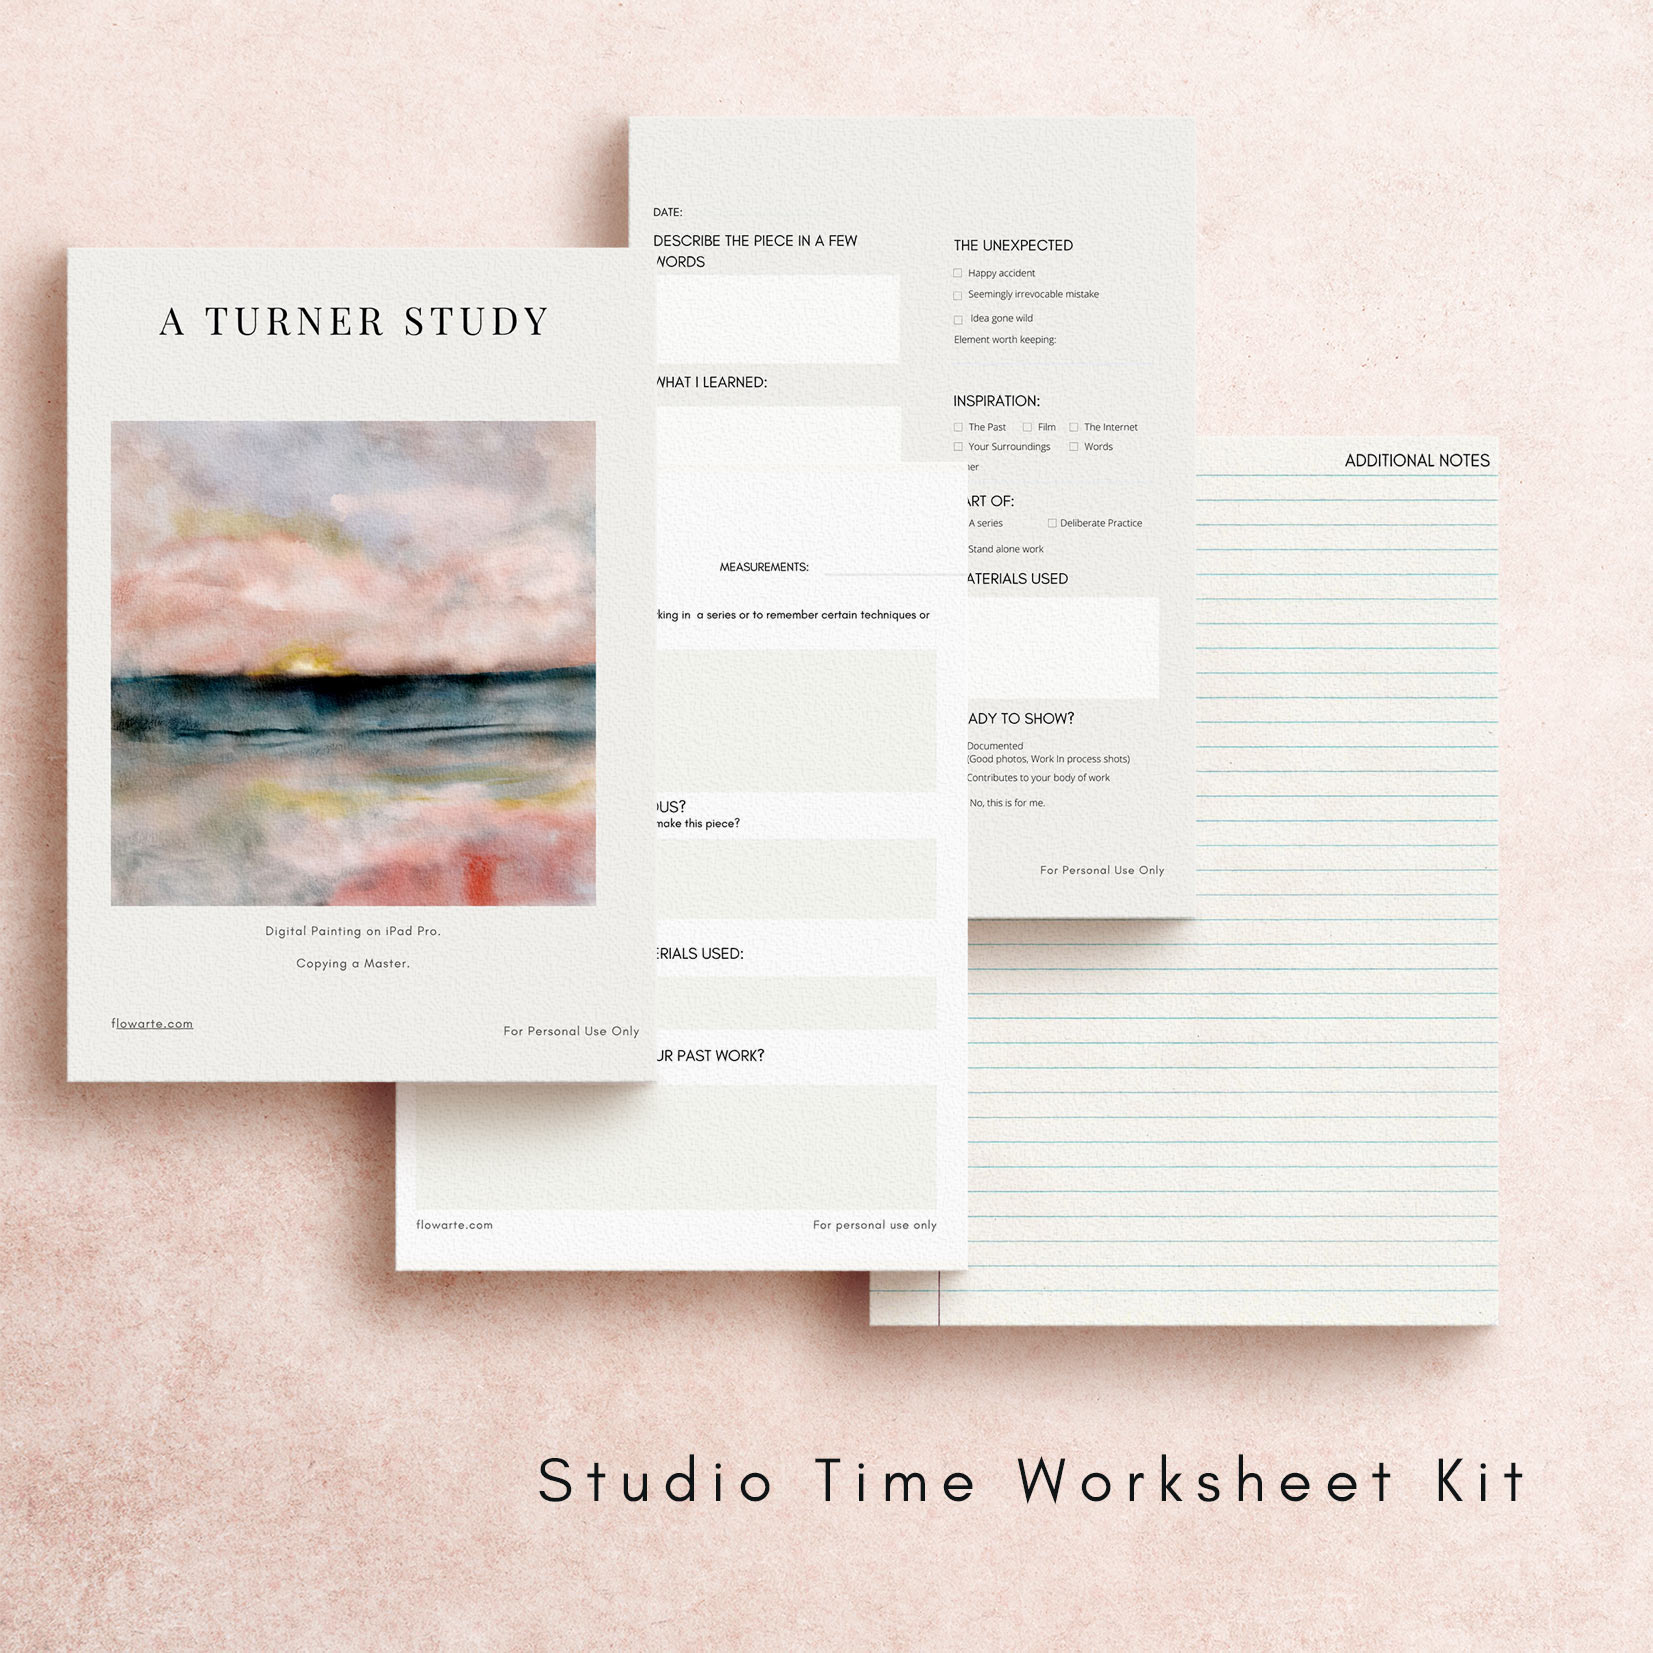 Sample sheets of Studio Time Kit